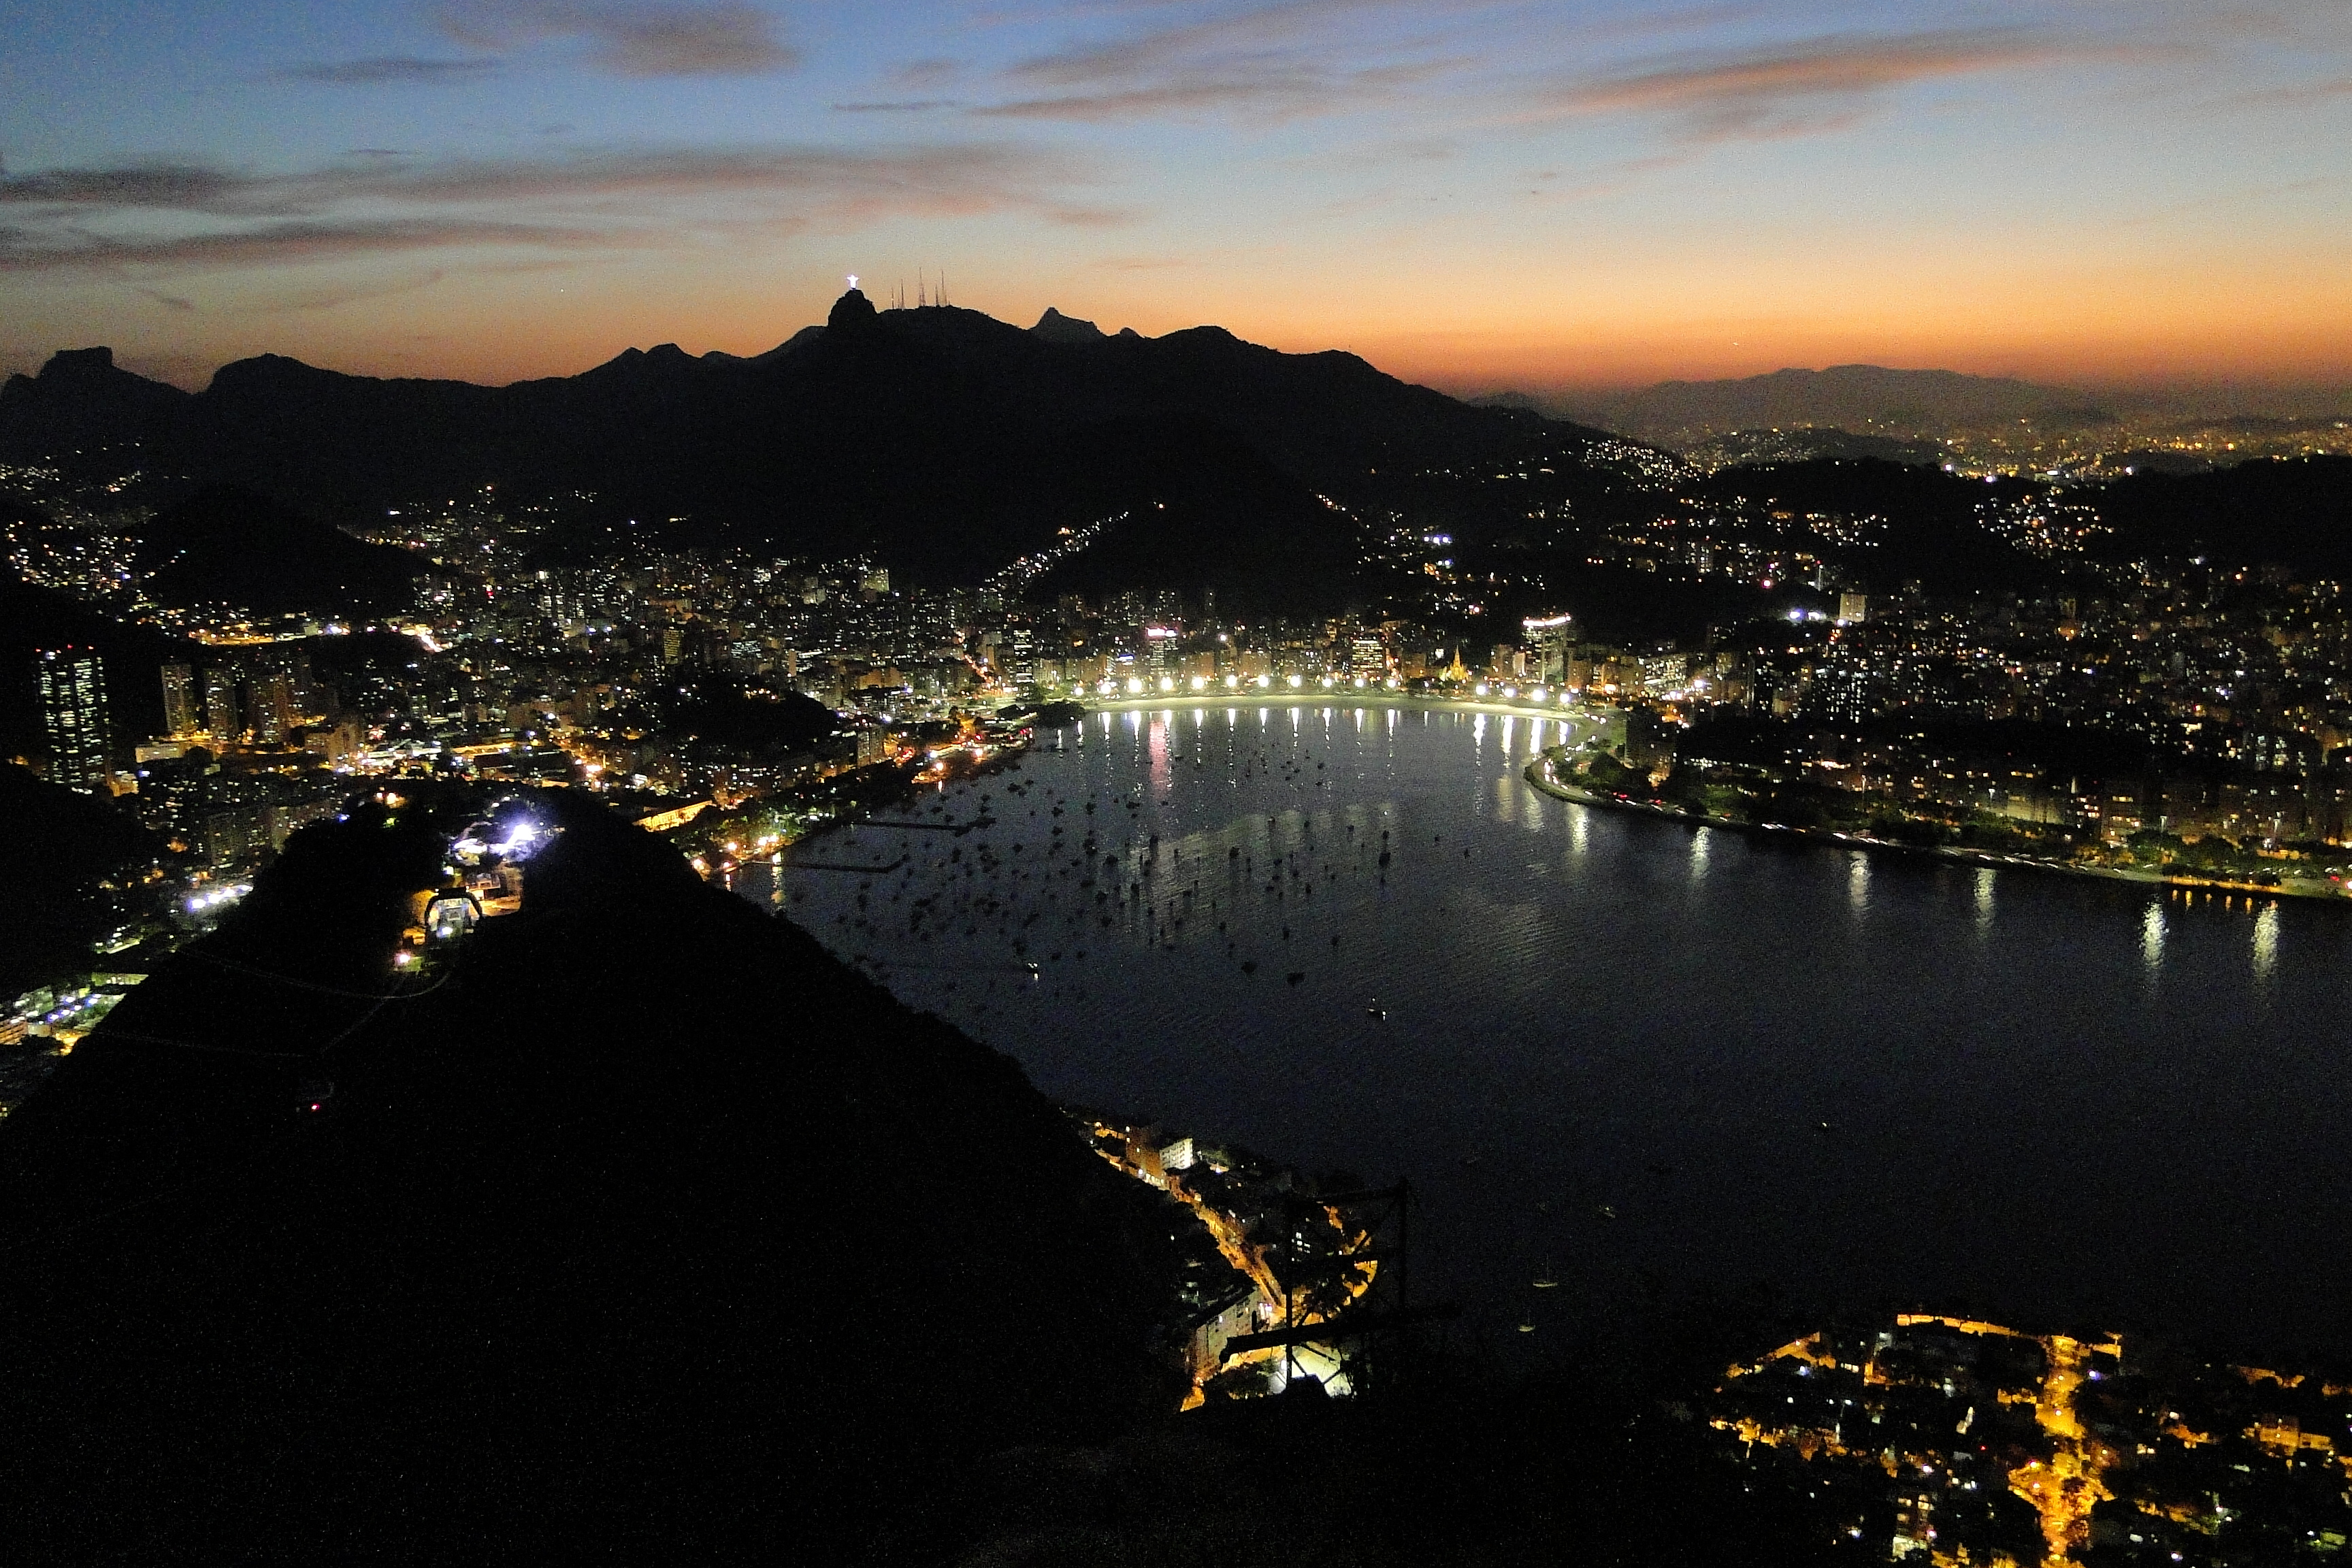 File:View from Sugarloaf Mountain-Pao de Acucar at Sunset - Rio de Janeiro  - Brazil - 04.jpg - Wikimedia Commons